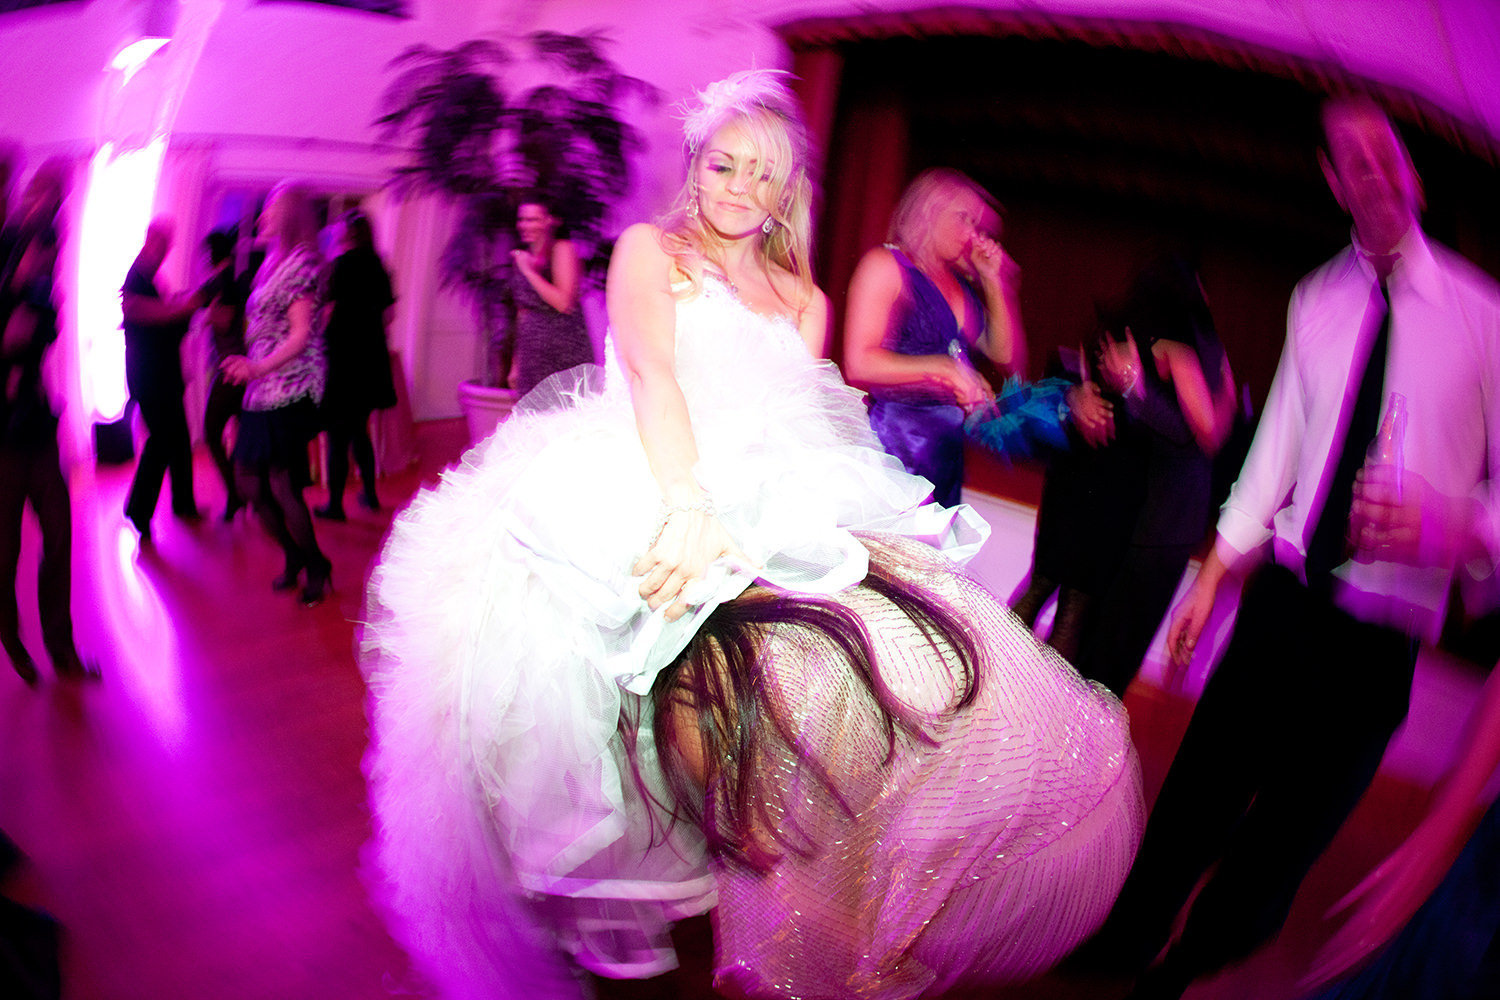 fun dancing image with bride and friends